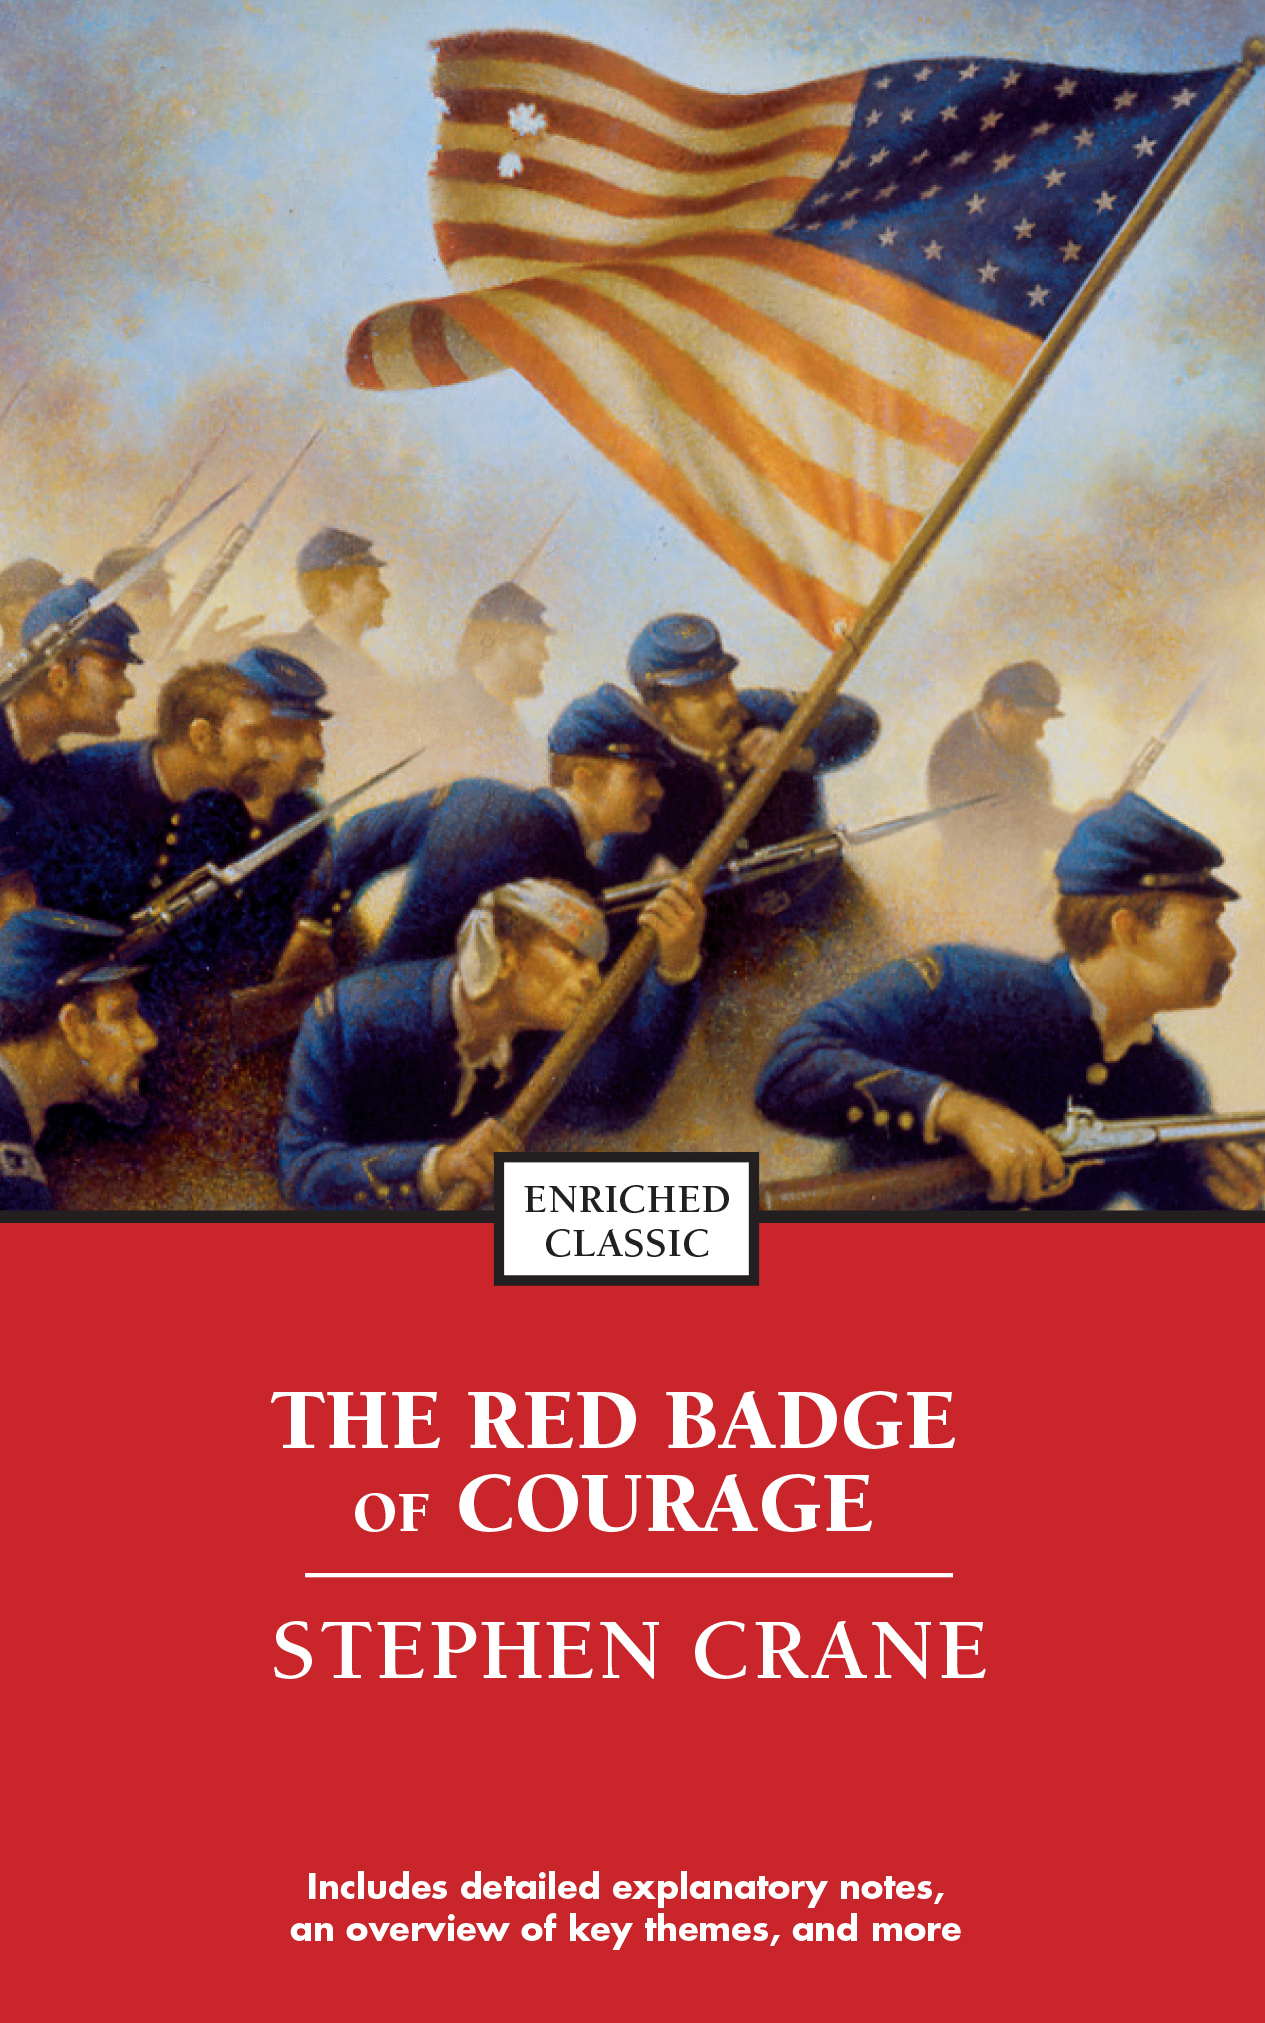 Essays of catch-22 and the red badge of courage